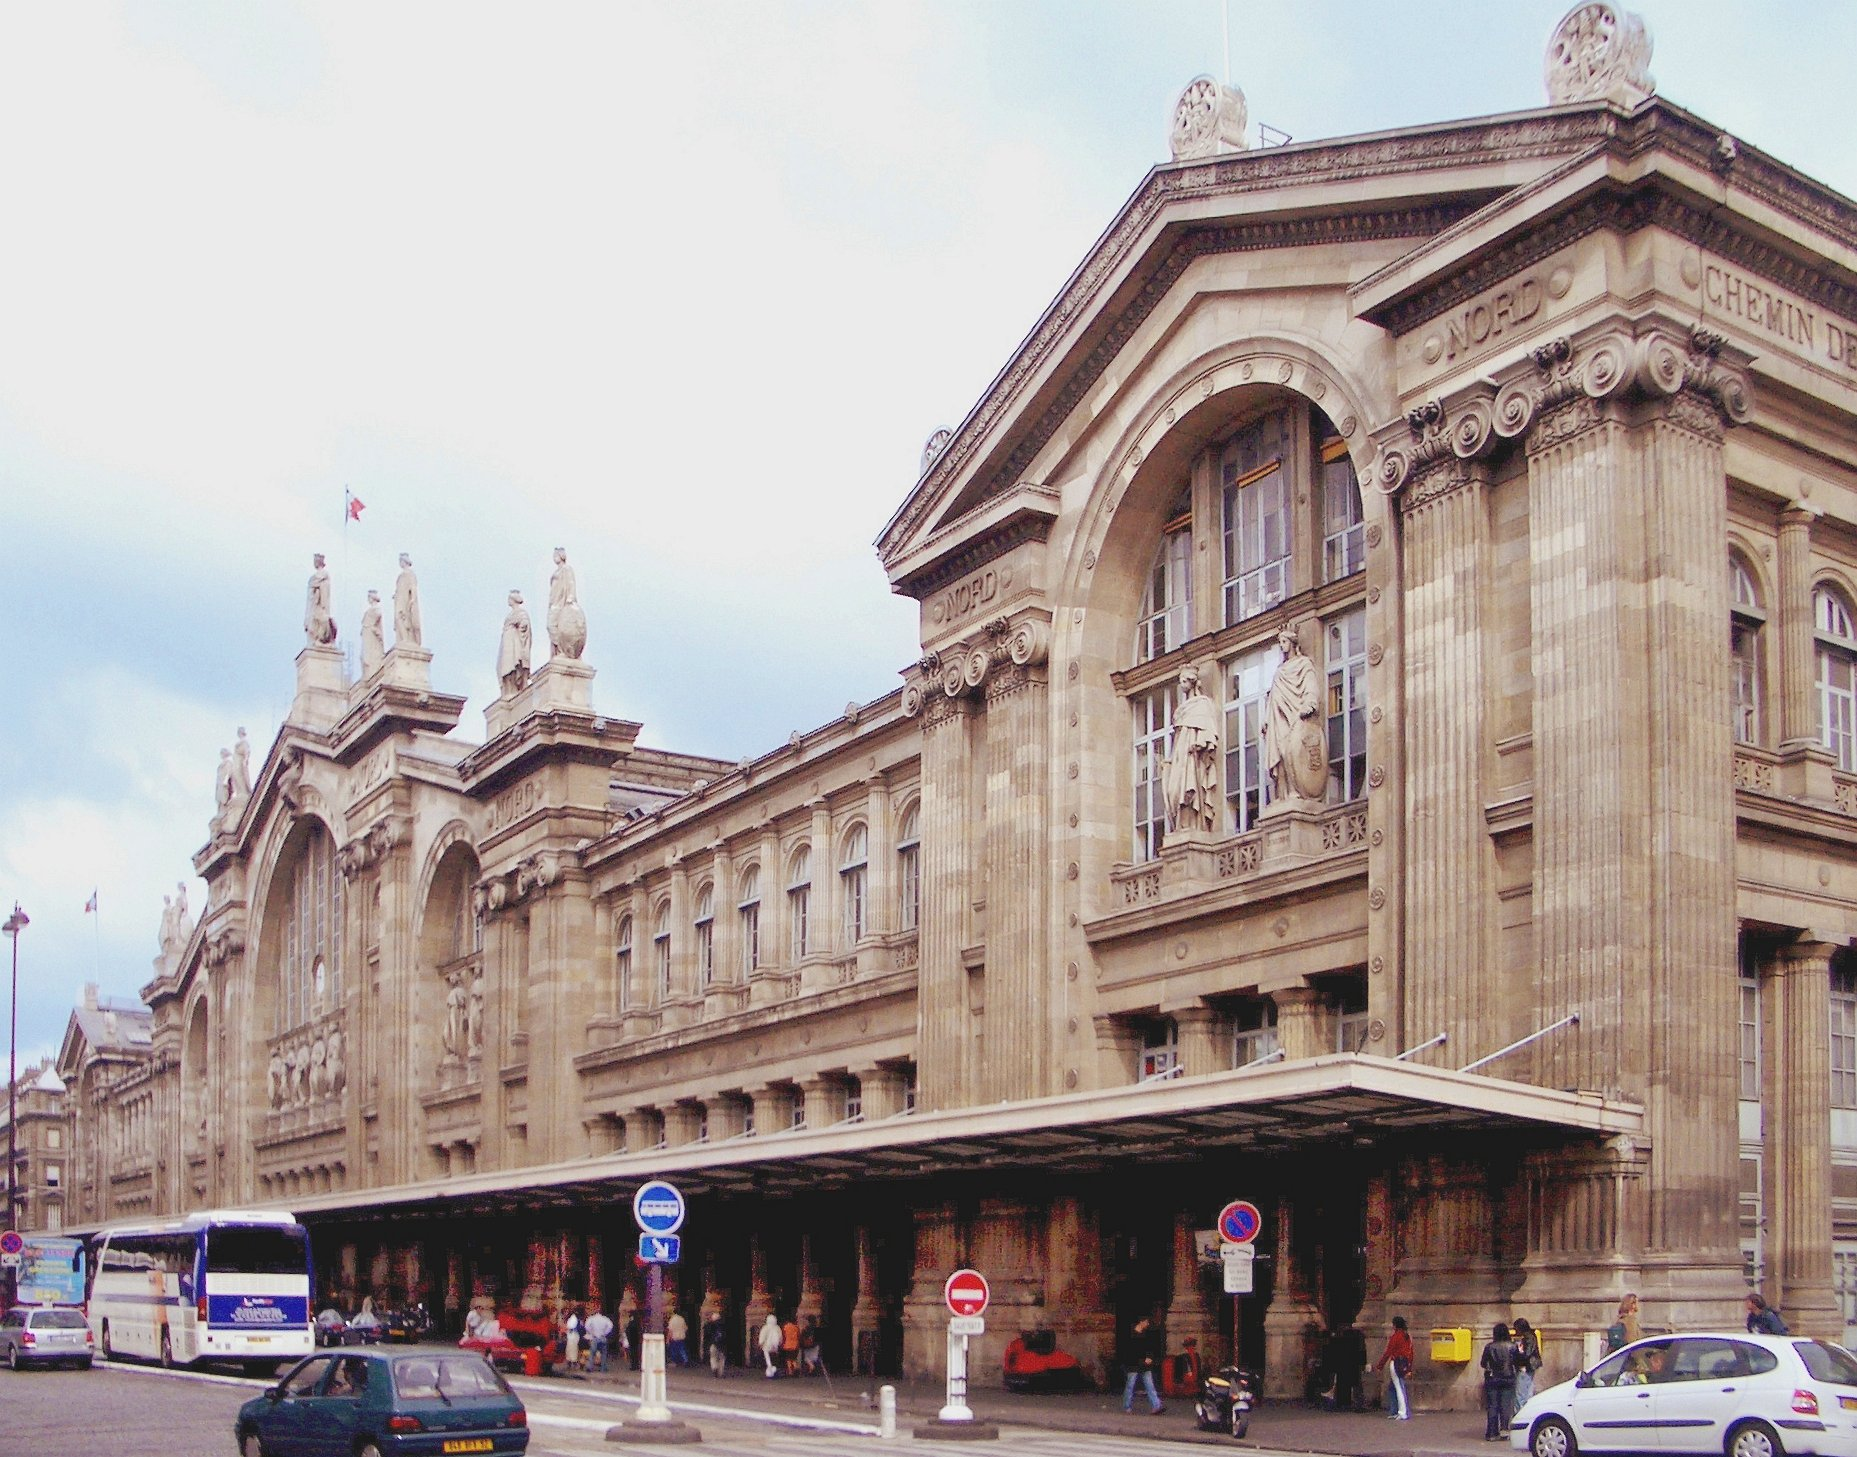 http://upload.wikimedia.org/wikipedia/commons/5/5d/Gare_du_Nord_Paris.jpg